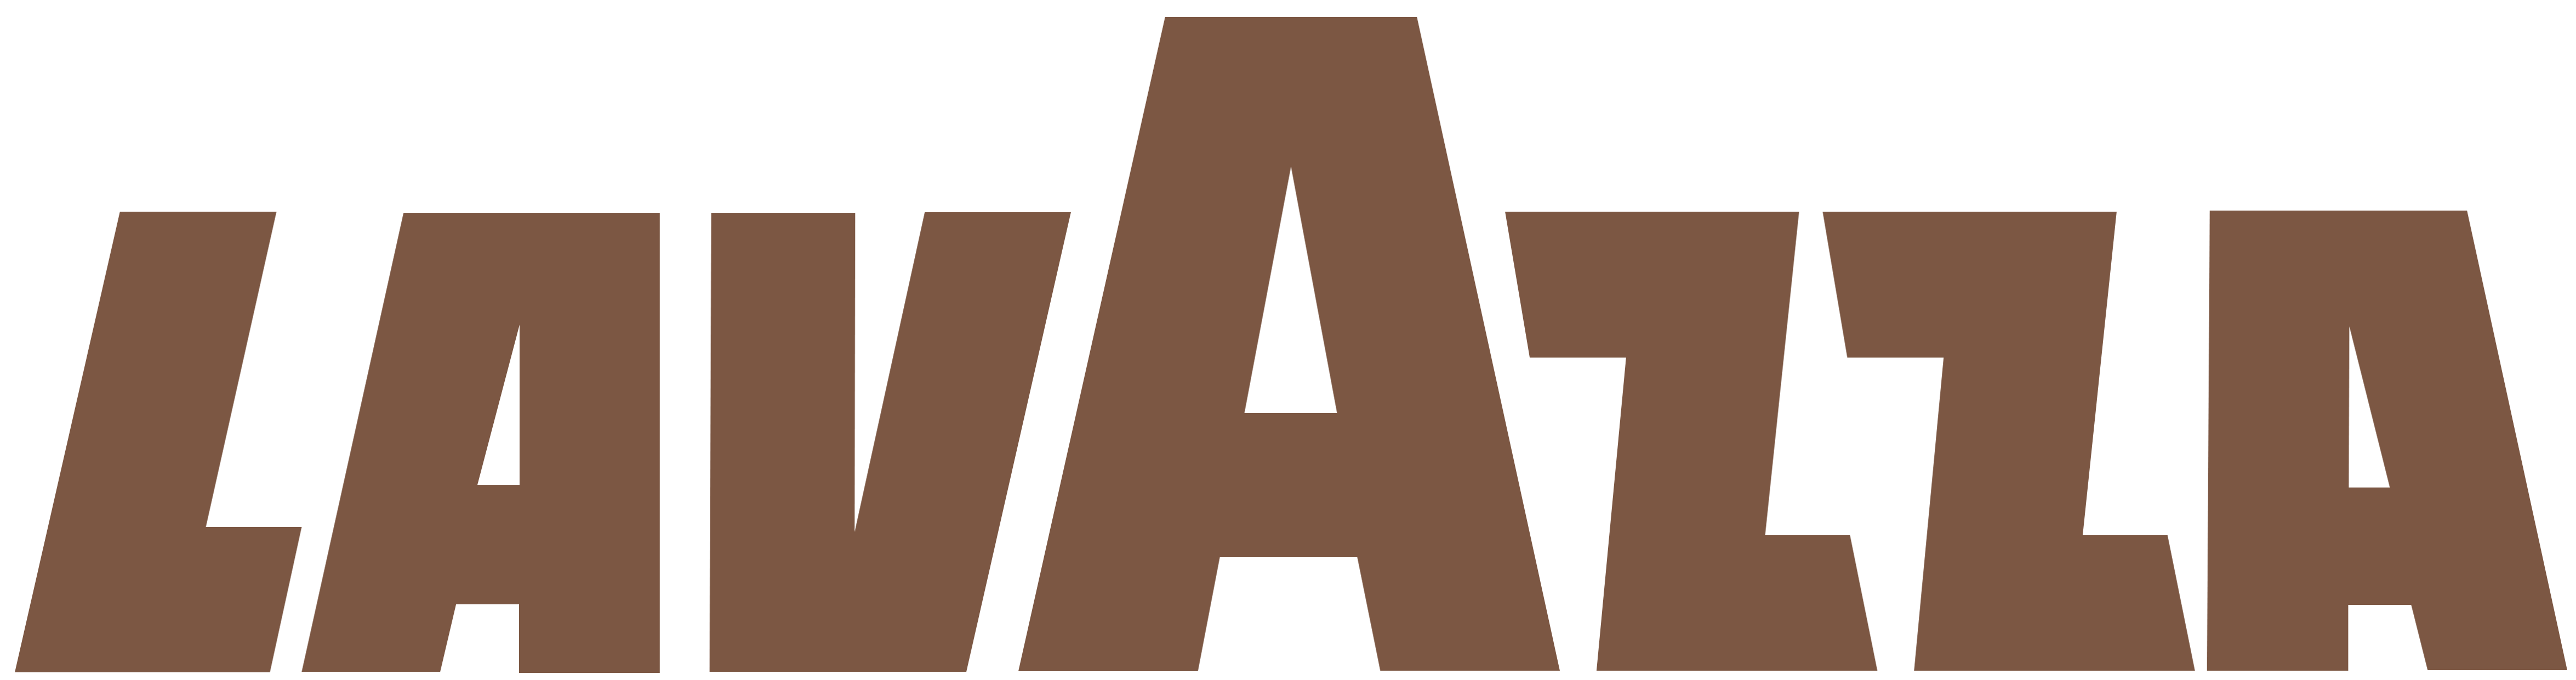 File Lavazza Logo Png Wikimedia Commons